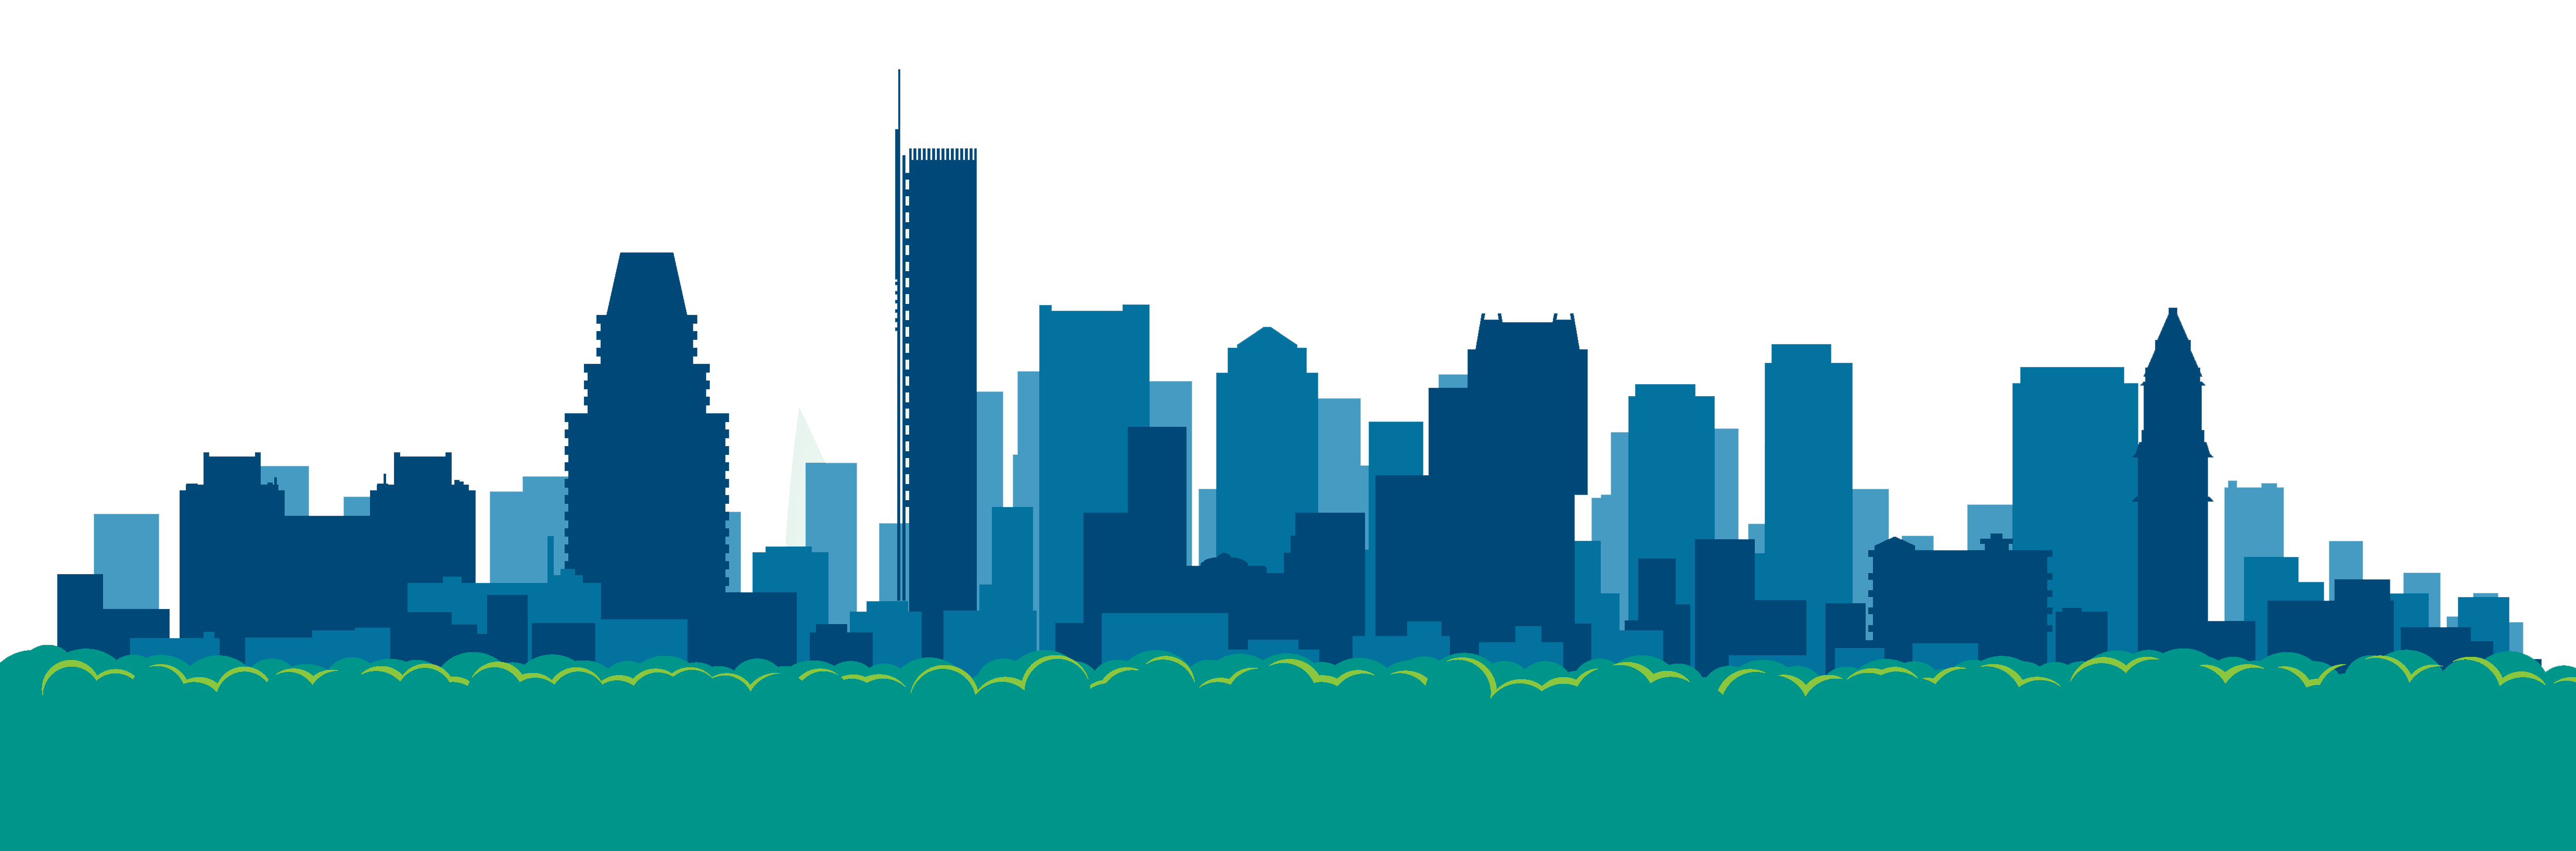 city-skyline-blog banner